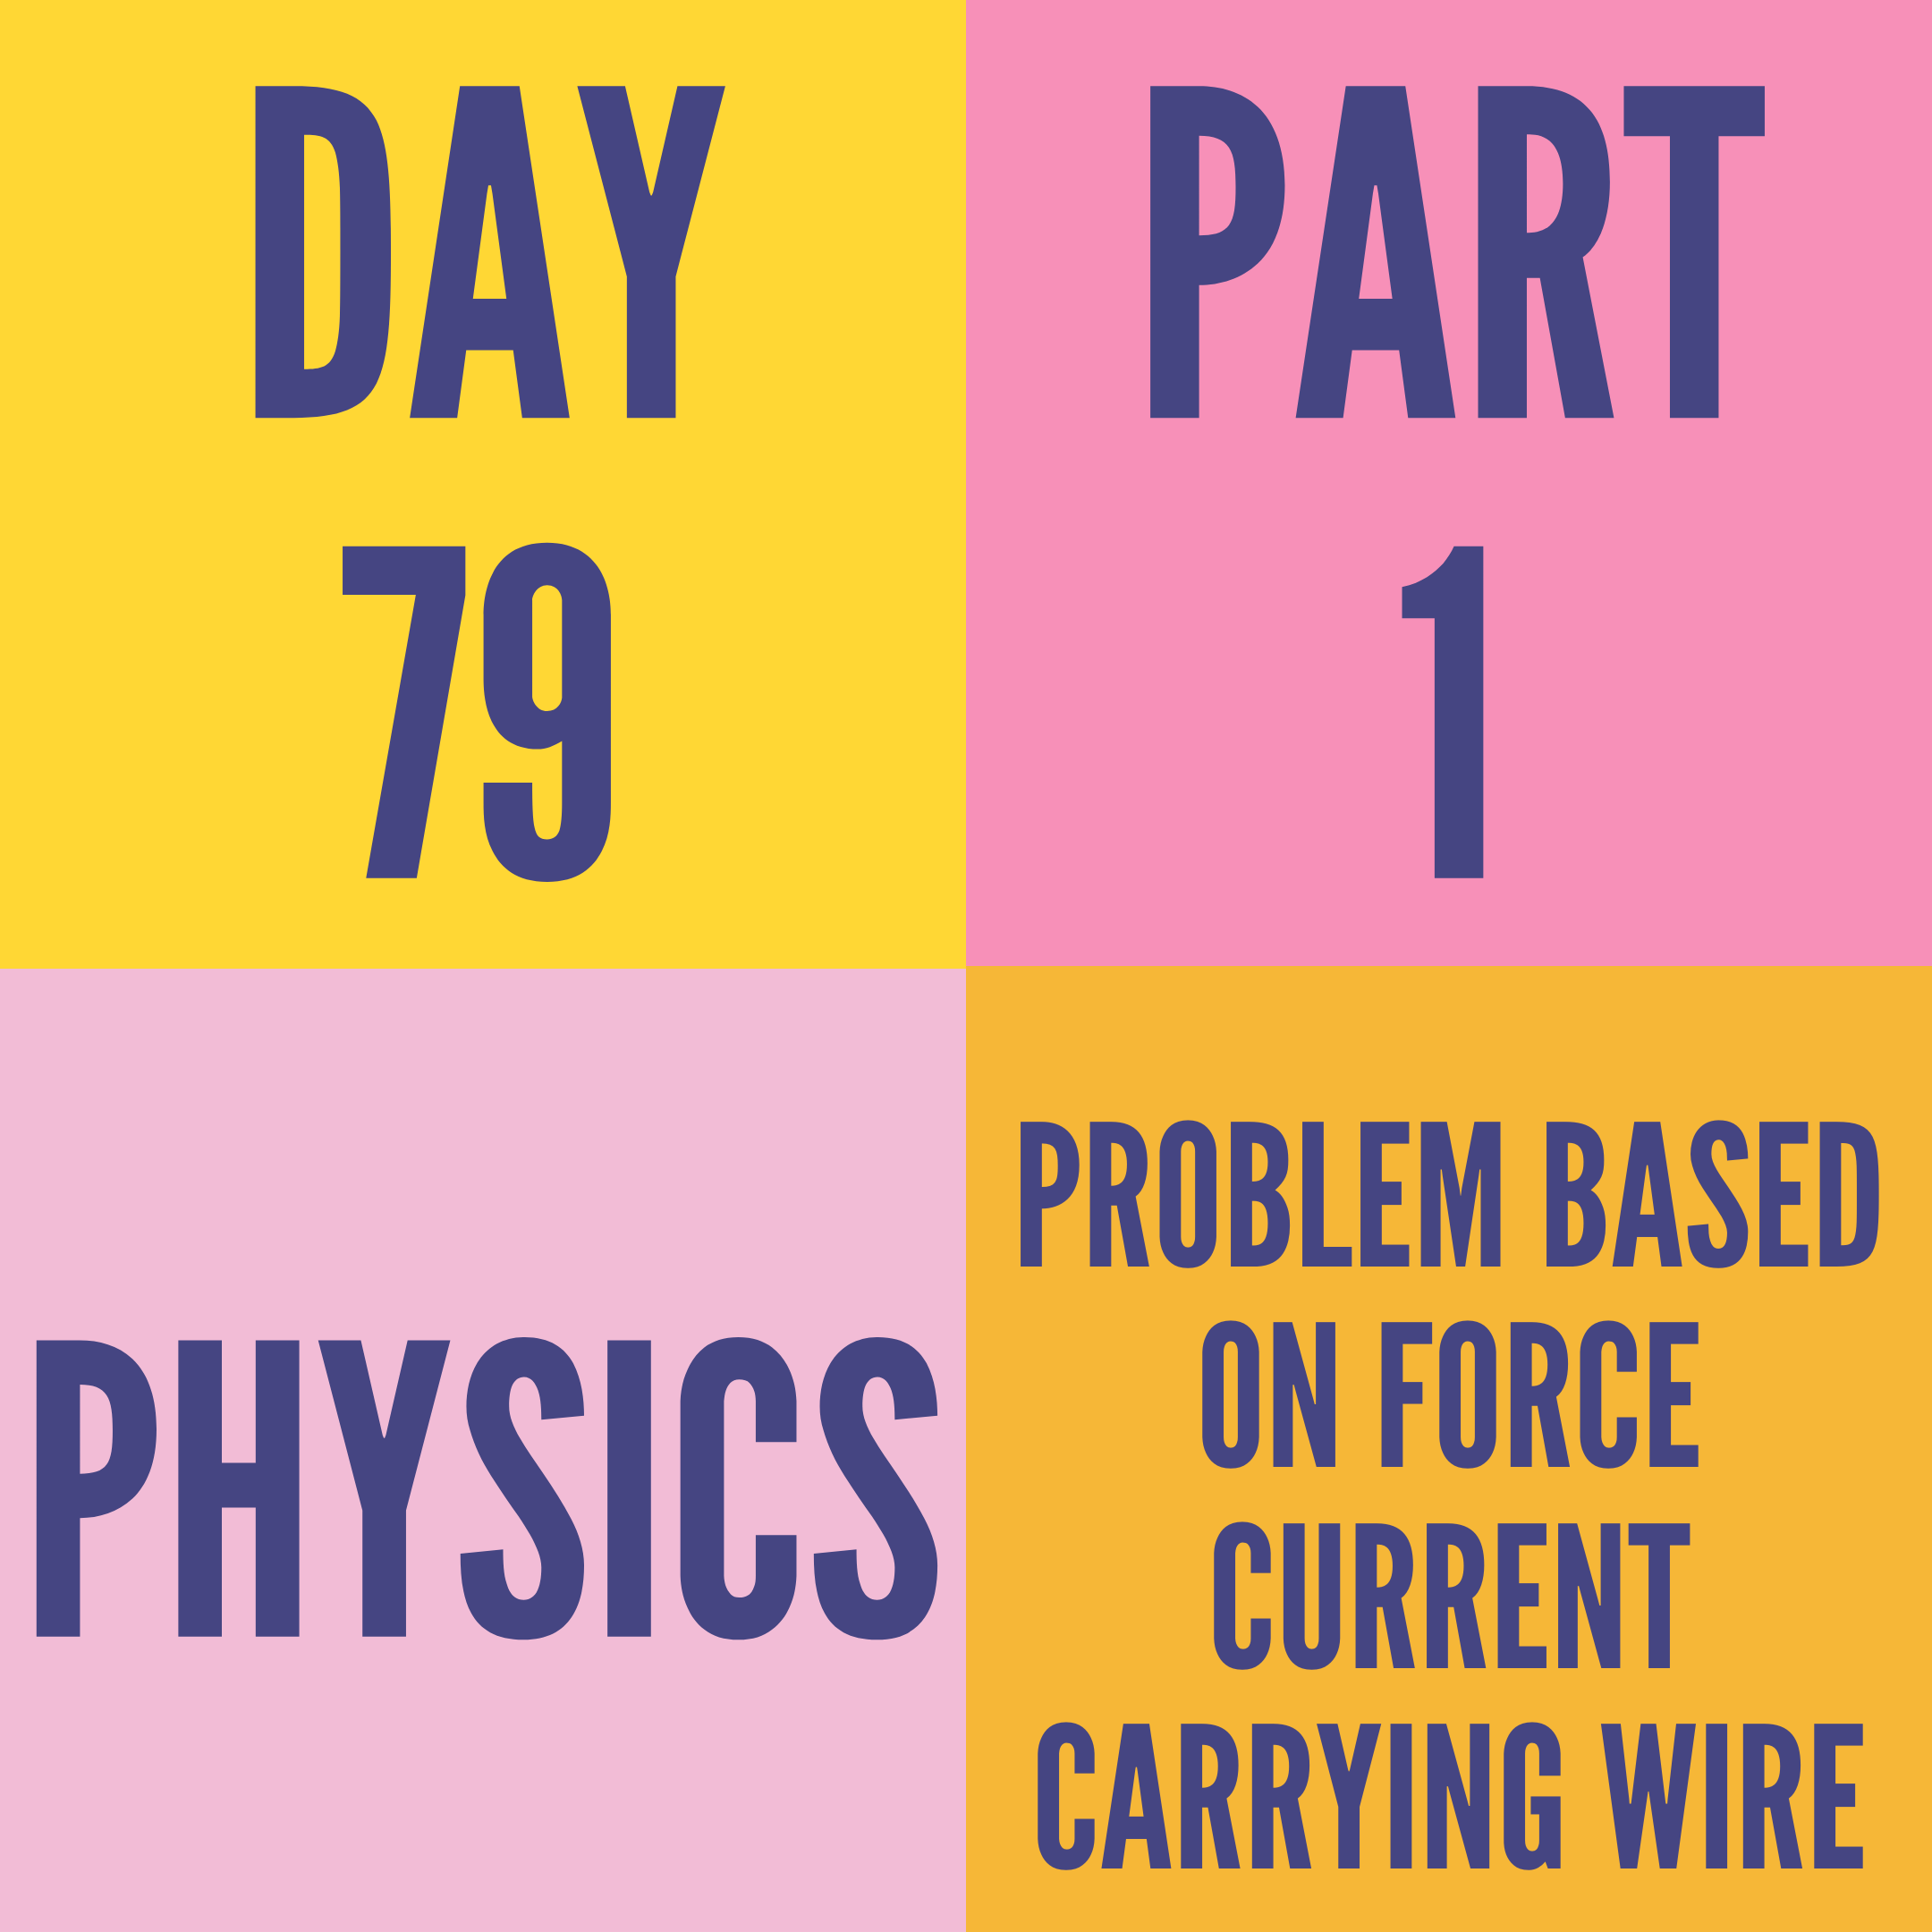 DAY-79 PART-1 PROBLEM BASED ON FORCE CURRENT CARRYING WIRE